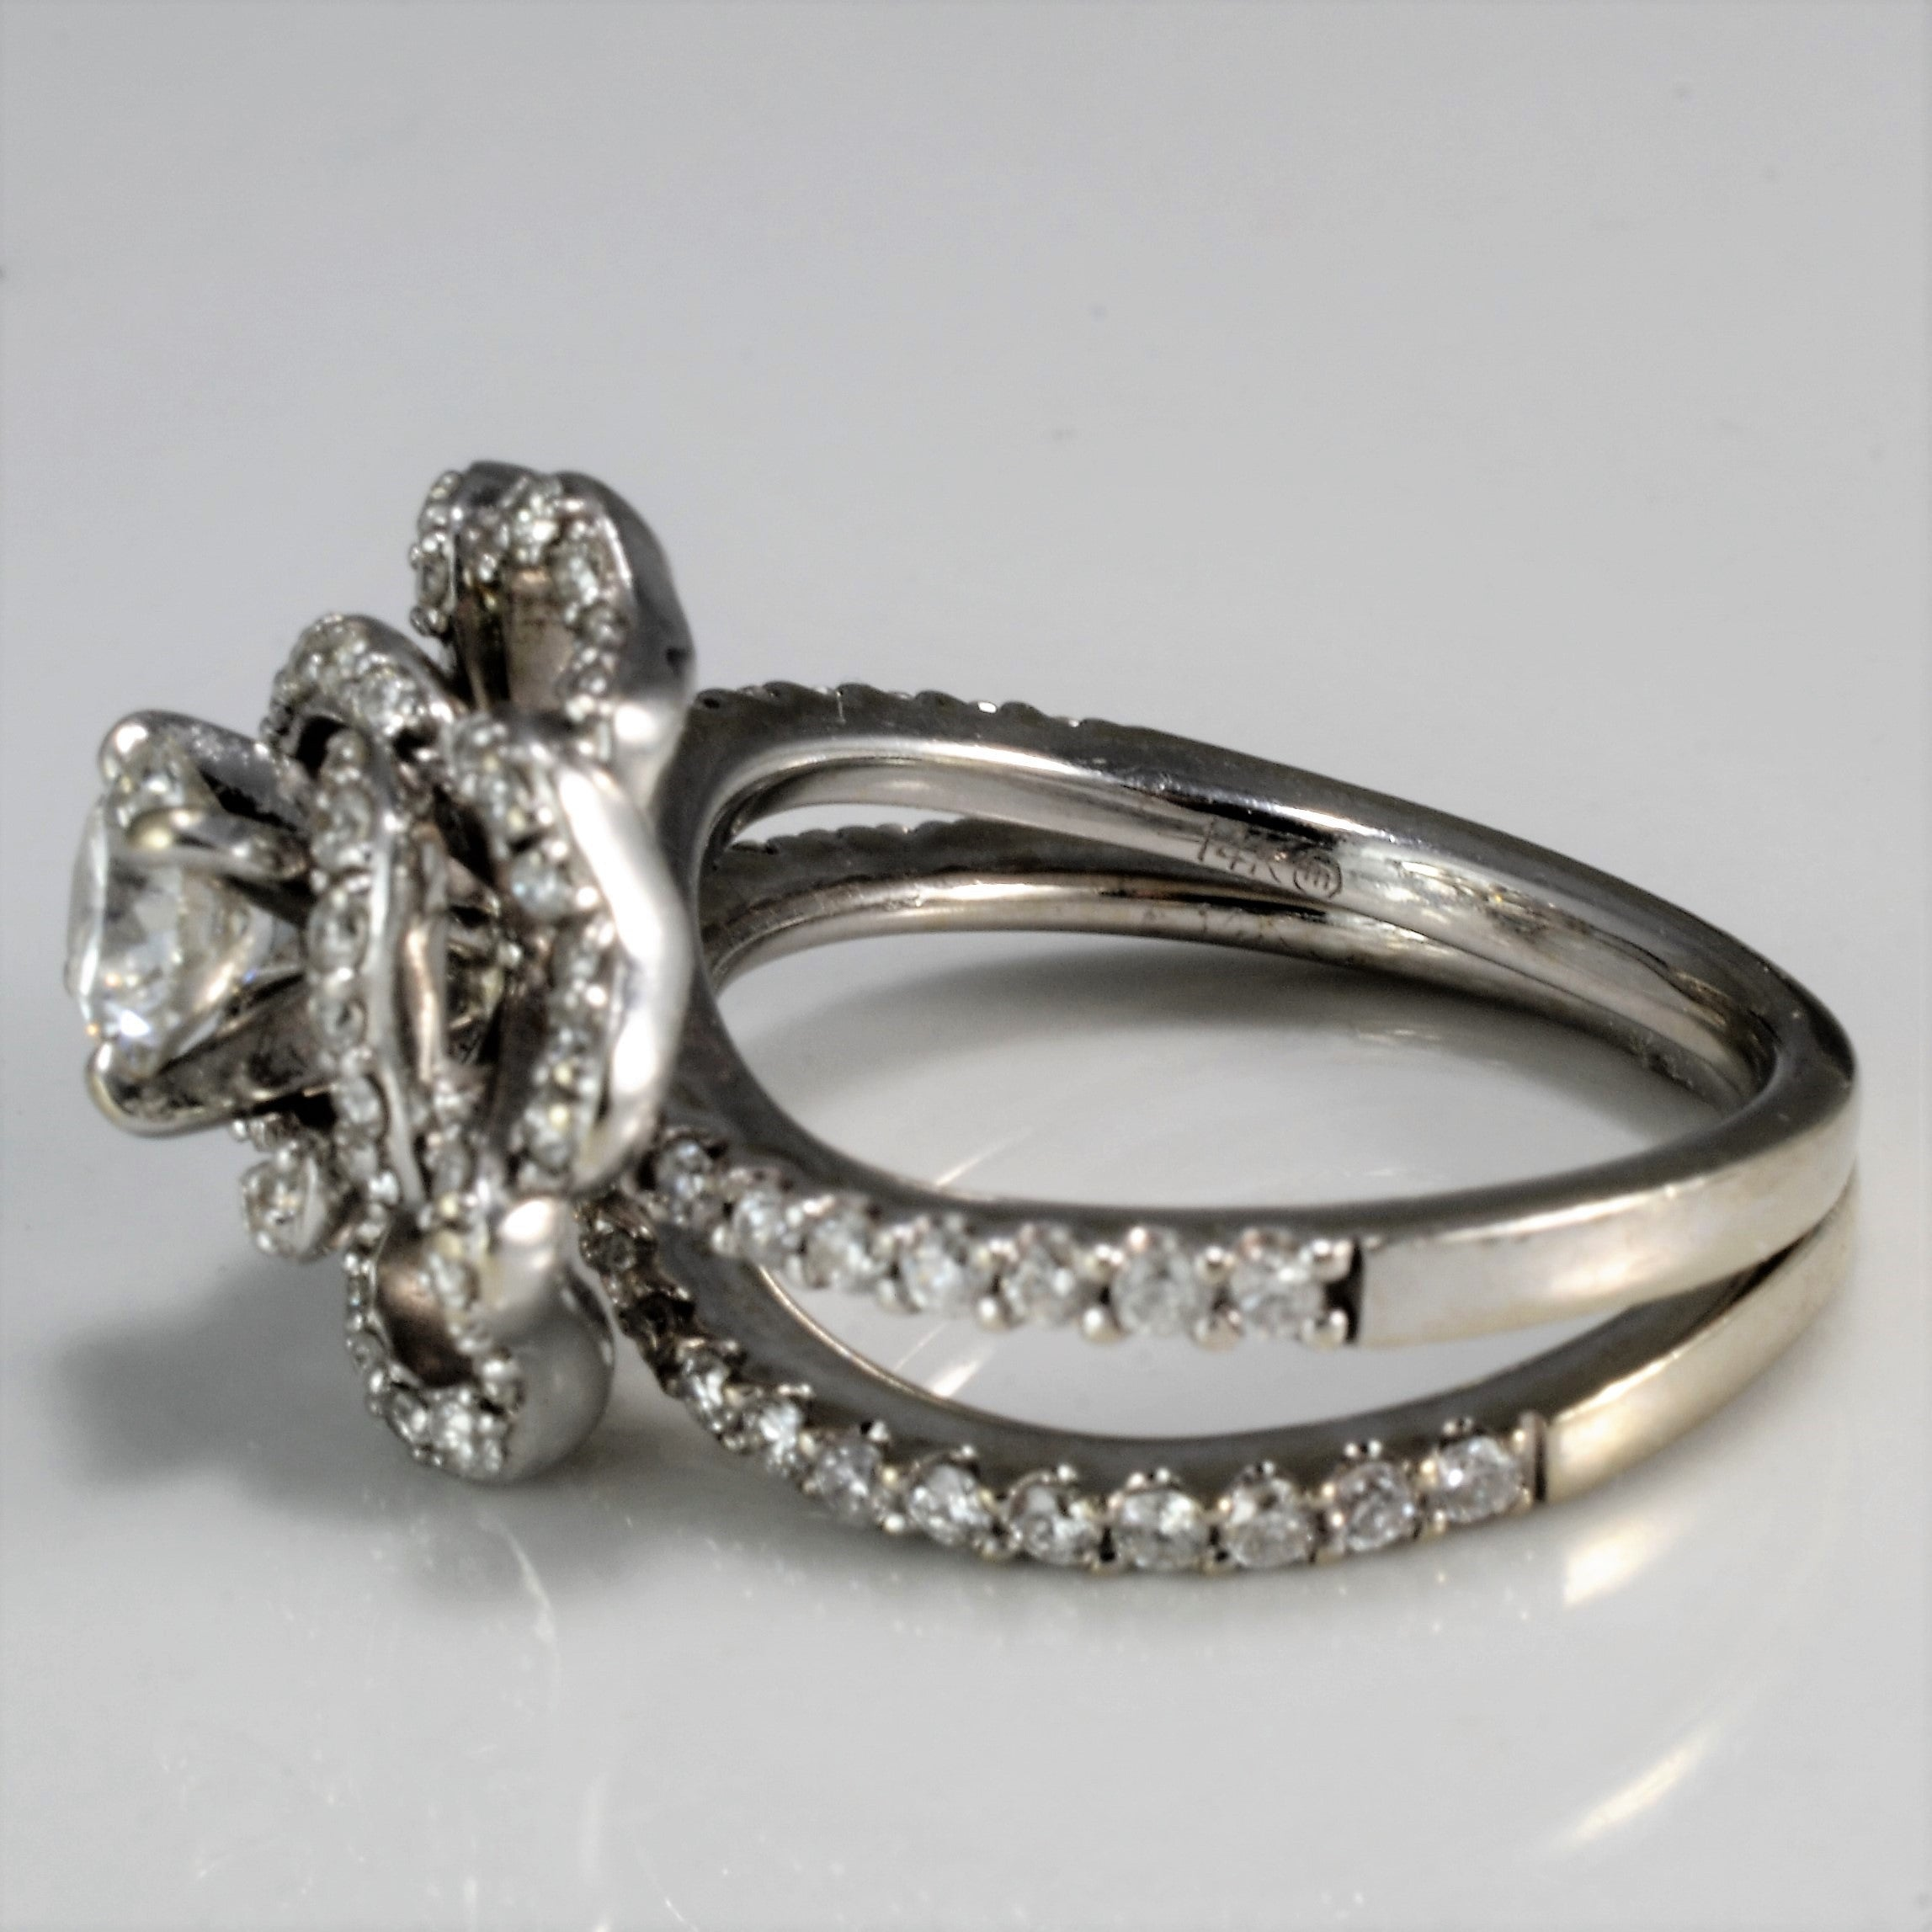 Floral Pave Diamond Wedding Set | 1.17 ctw, SZ 5.75 |